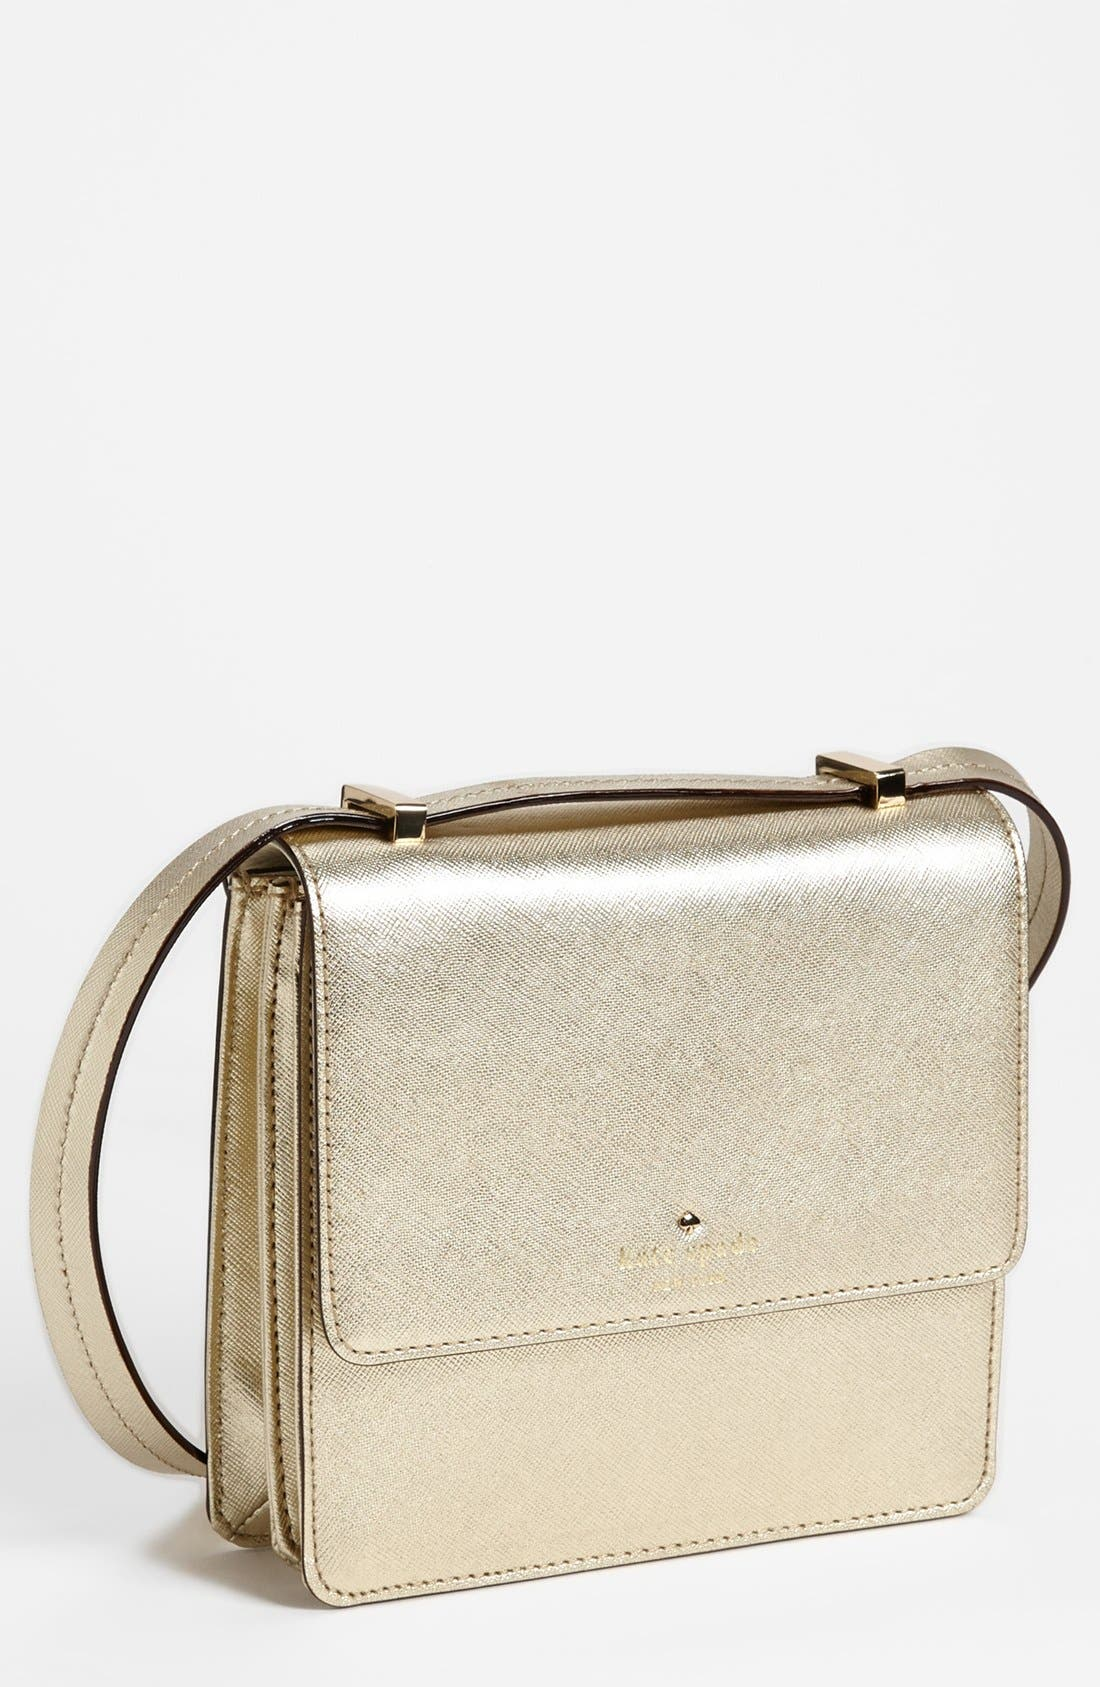 Main Image - kate spade new york 'mikas pond - nico' crossbody bag